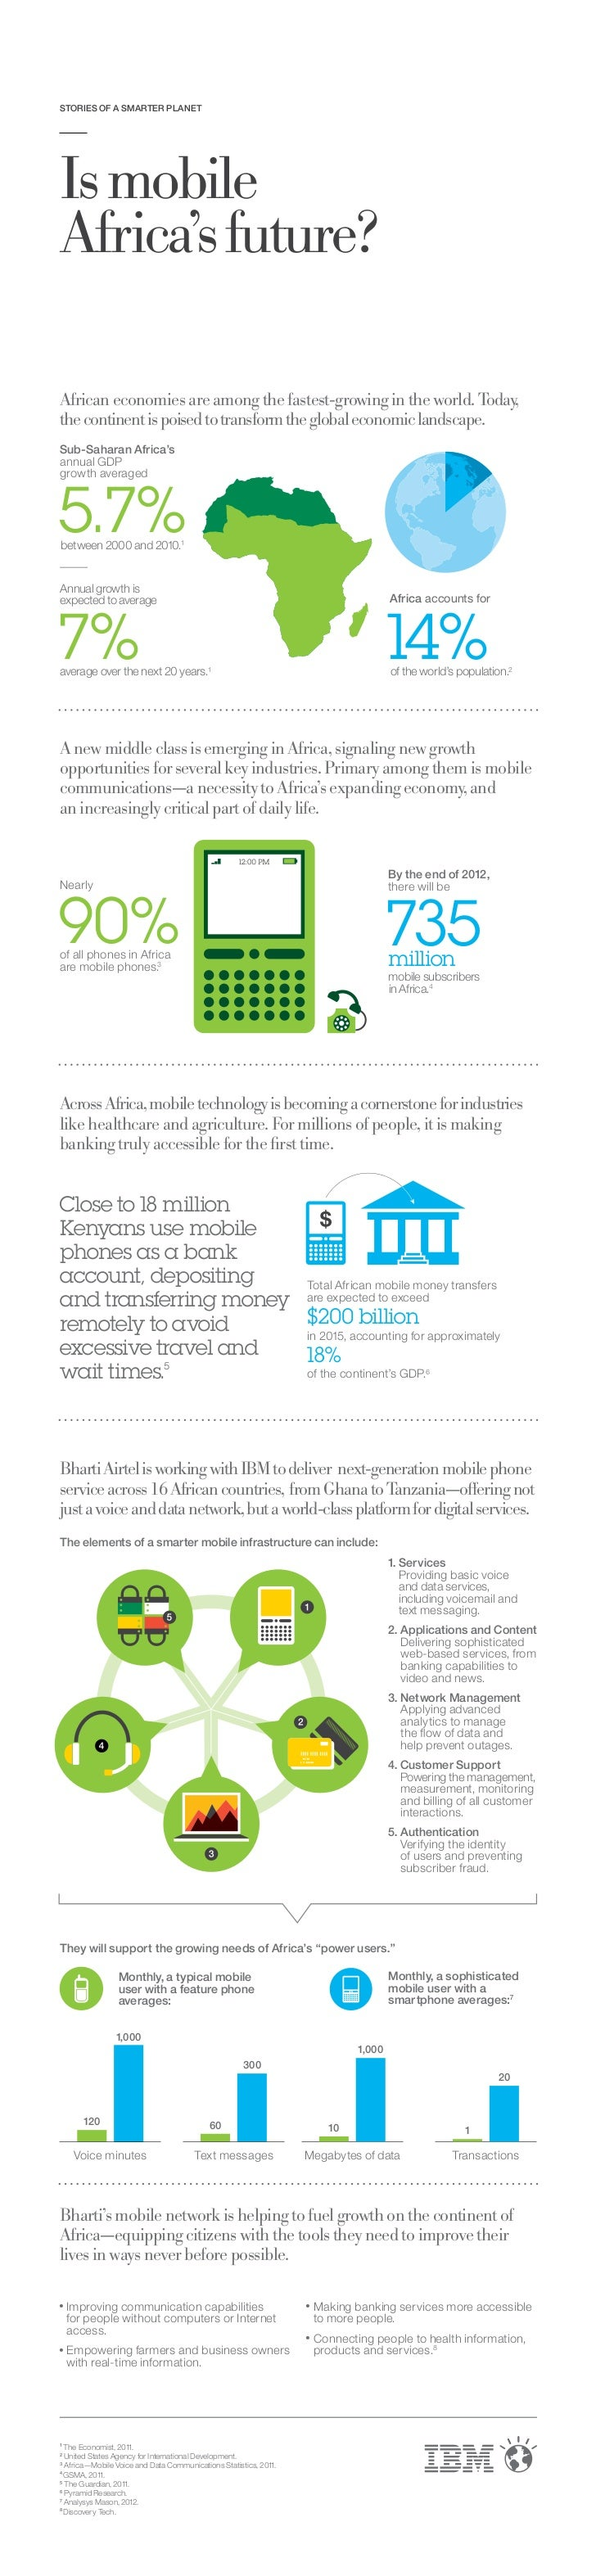 Is Mobile Africa's Future